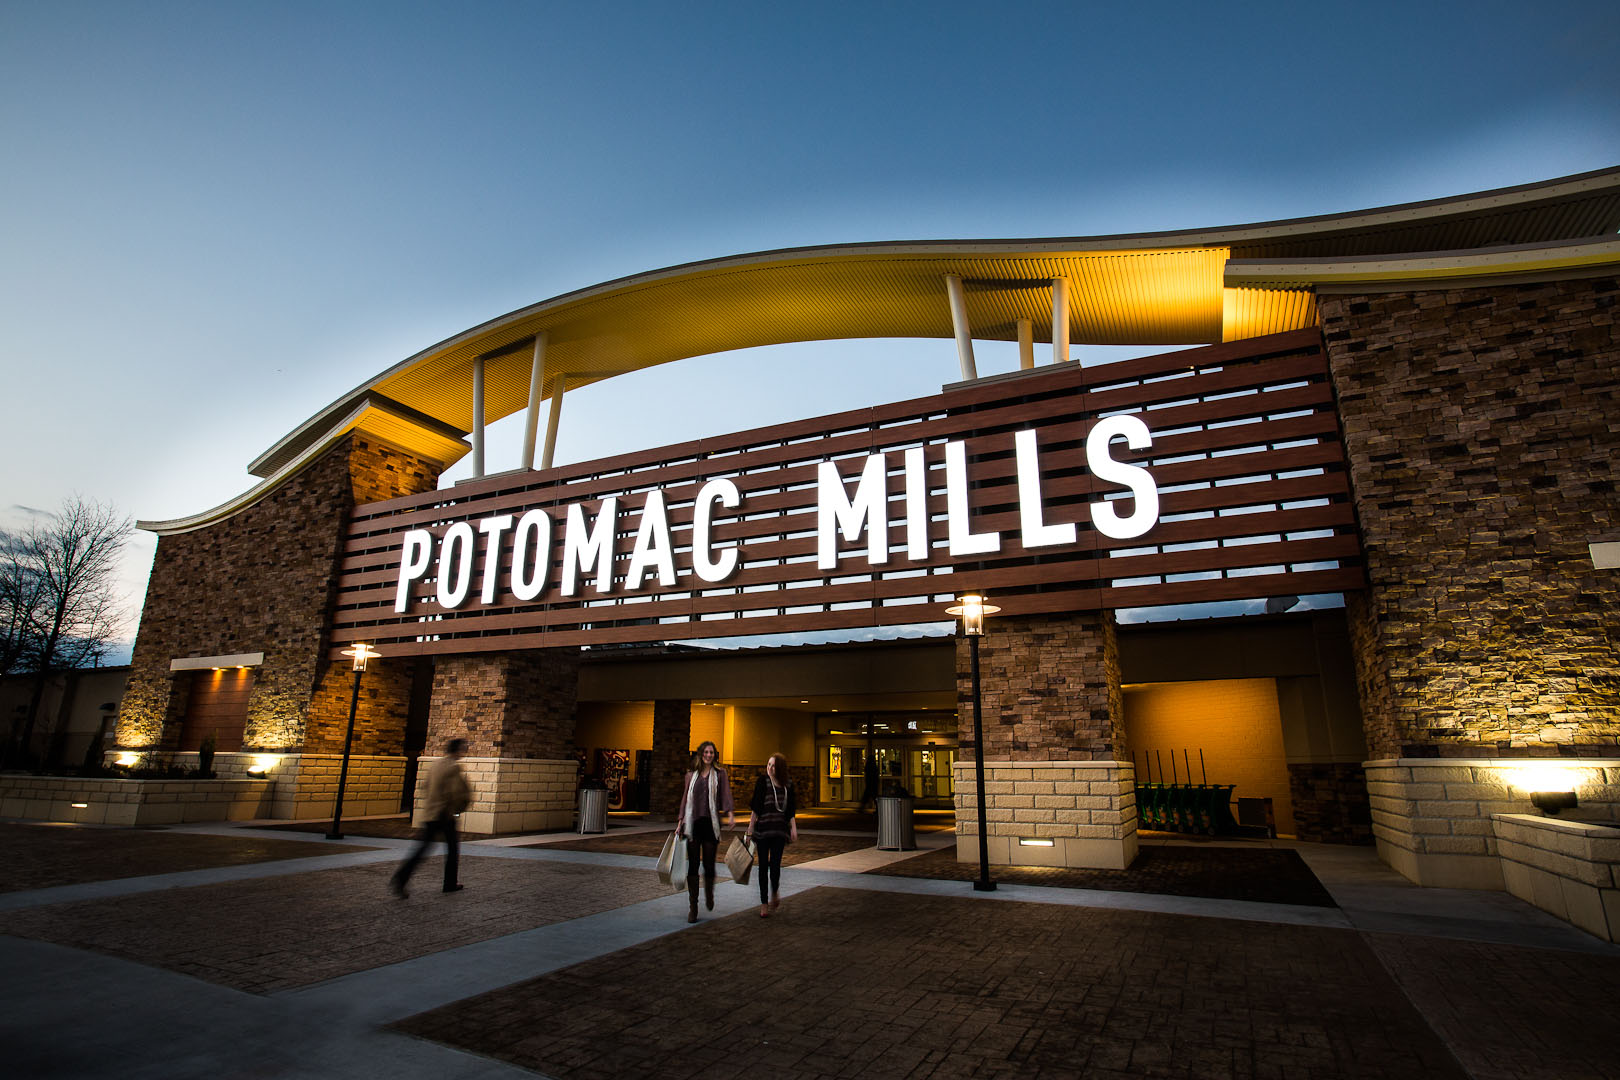 Potomac Mills is Virginia's largest outlet mall, located minutes from the heart of Washington D.C. Potomac Mills features an indoor shopping experience with over stores, including Bloomingdale's-The Outlet Store, Neiman Marcus Last Call, Saks Fifth Avenue OFF 5TH, Nordstrom Rack, Kate Spade New York, The North Face, and Nike Factory Store.7/10().